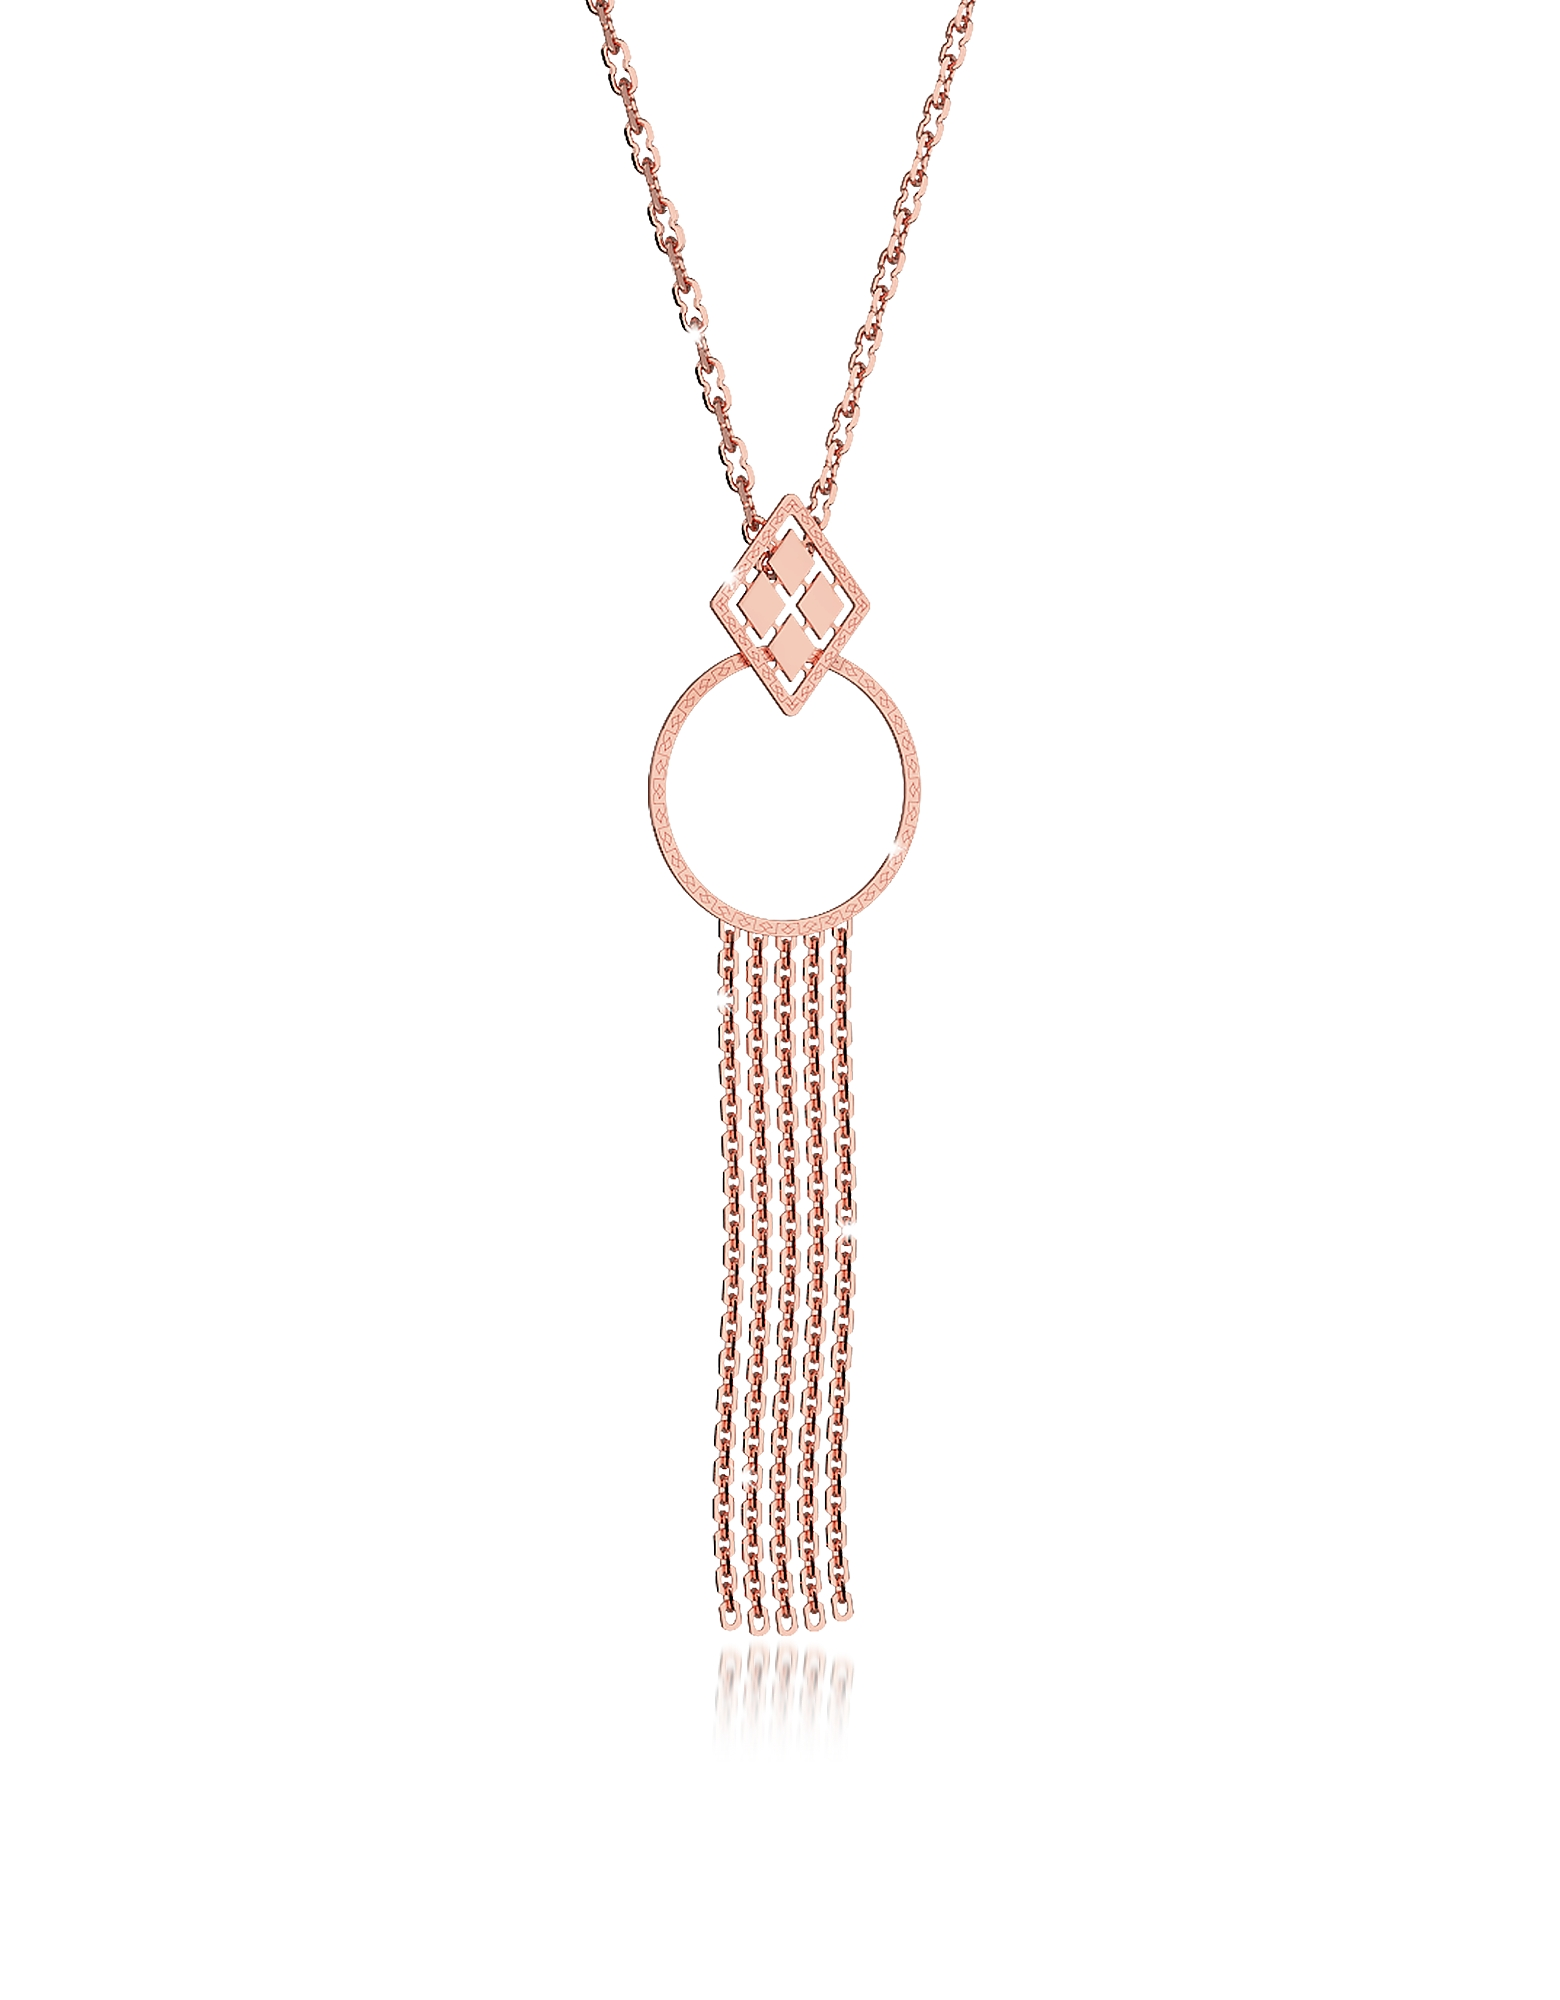 Rebecca Necklaces, Melrose Rose Gold Over Bronze Cuff Necklace w/Geometric Charms